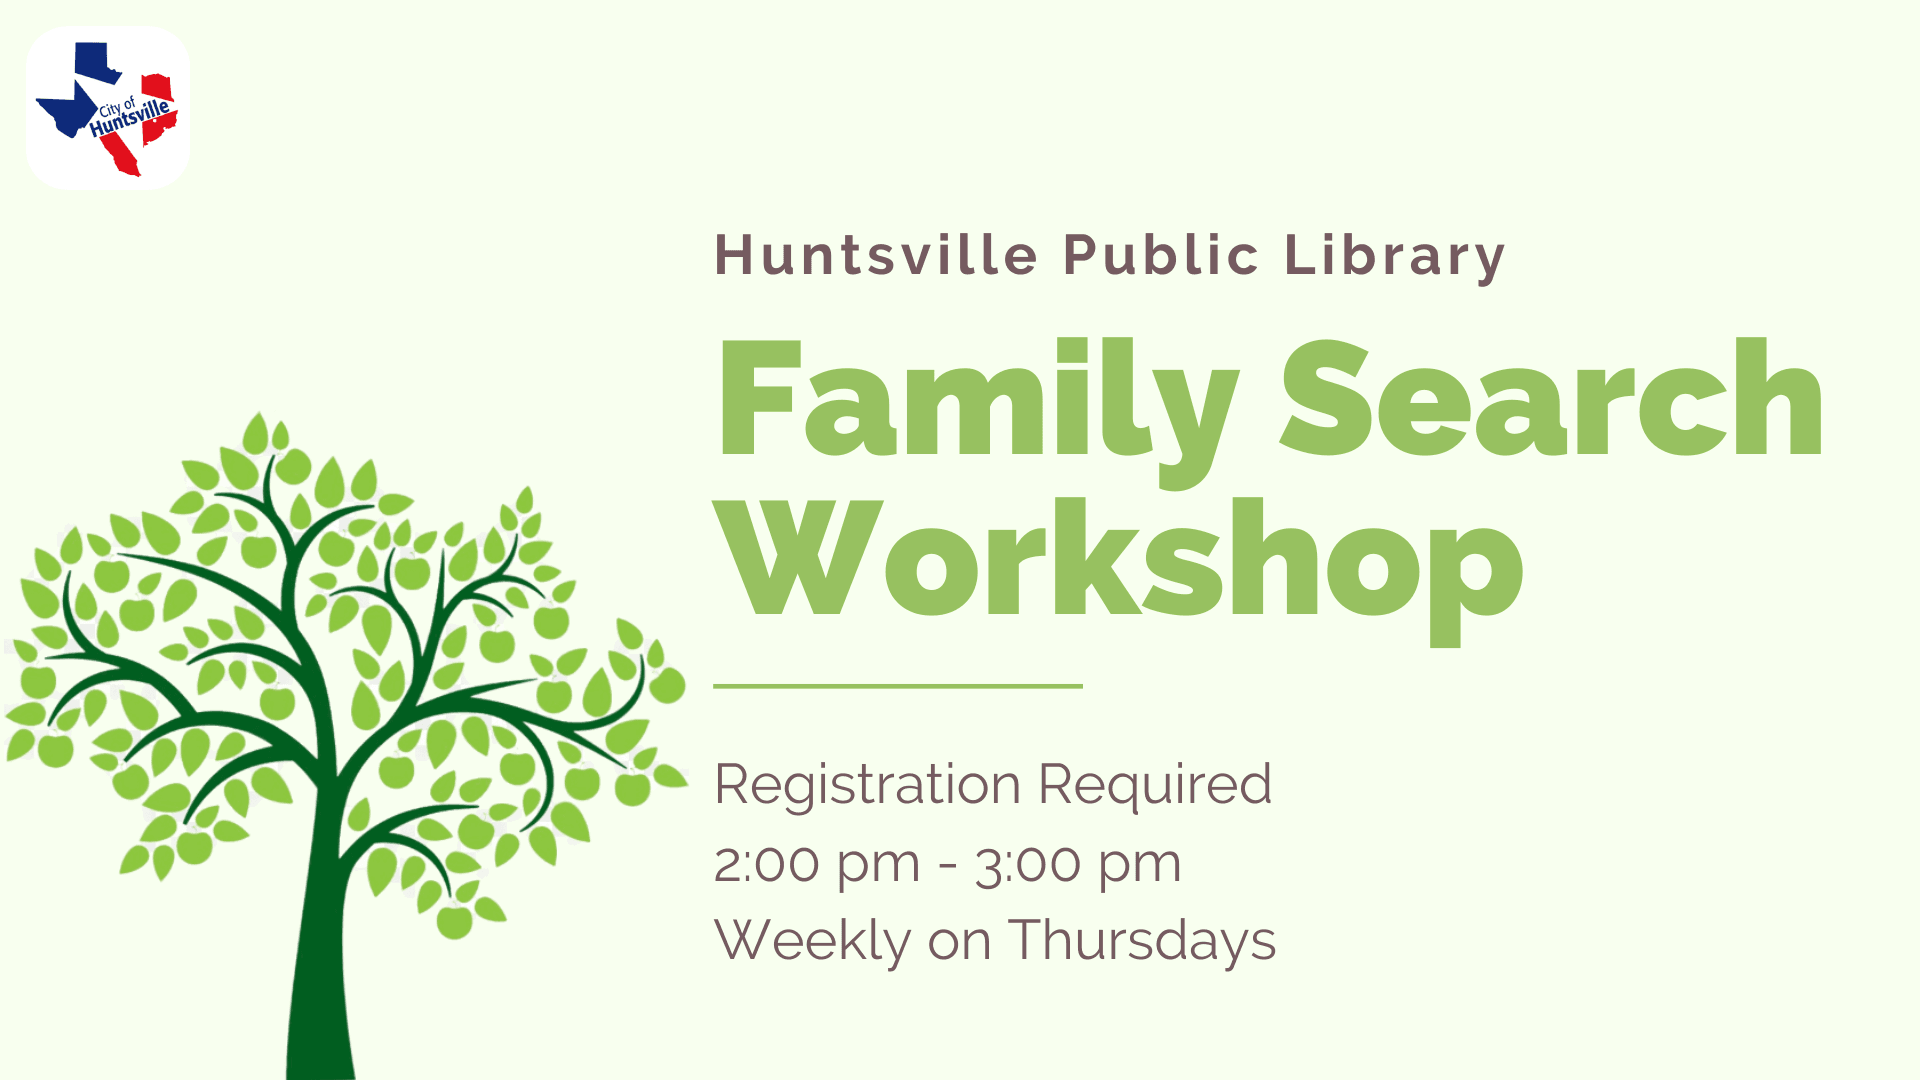 Family Search Workshop